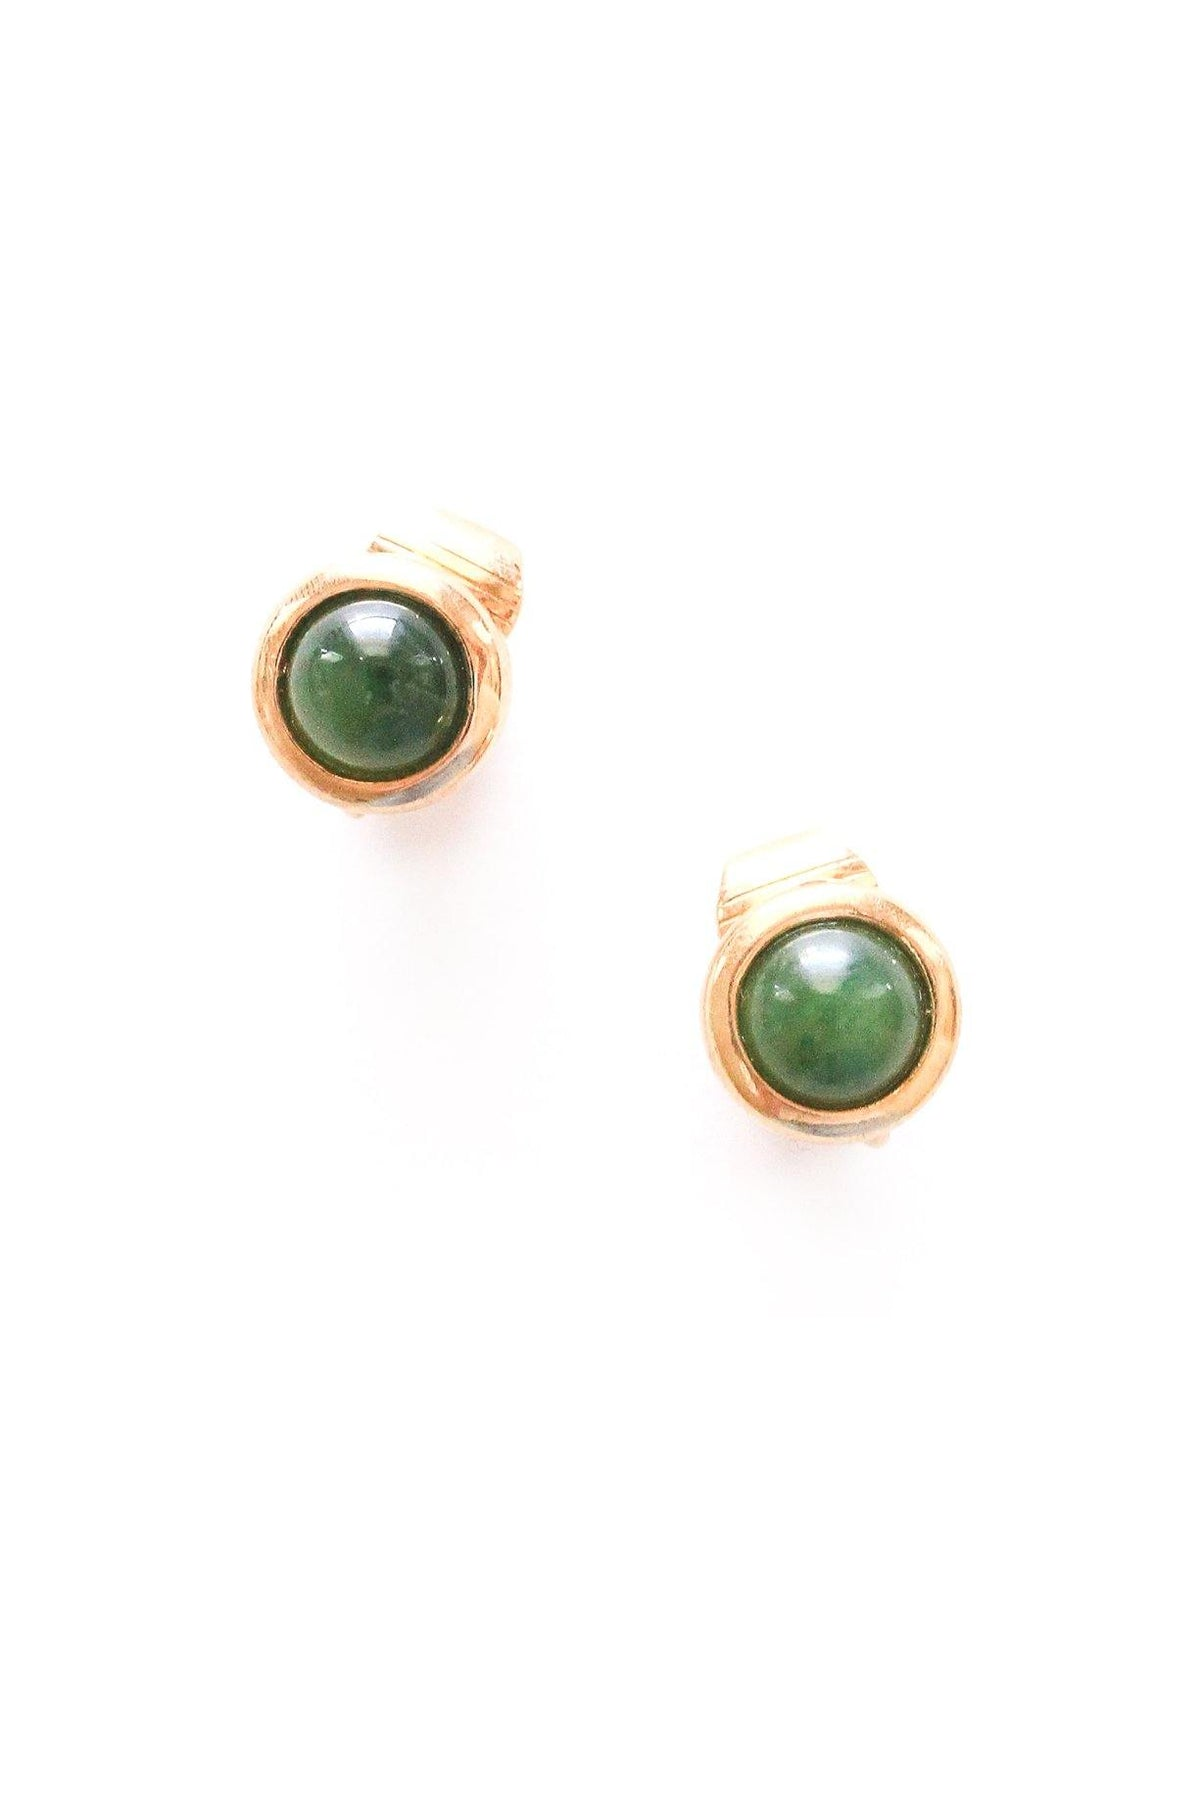 Vintage Avon jade stone earrings from Sweet & Spark.